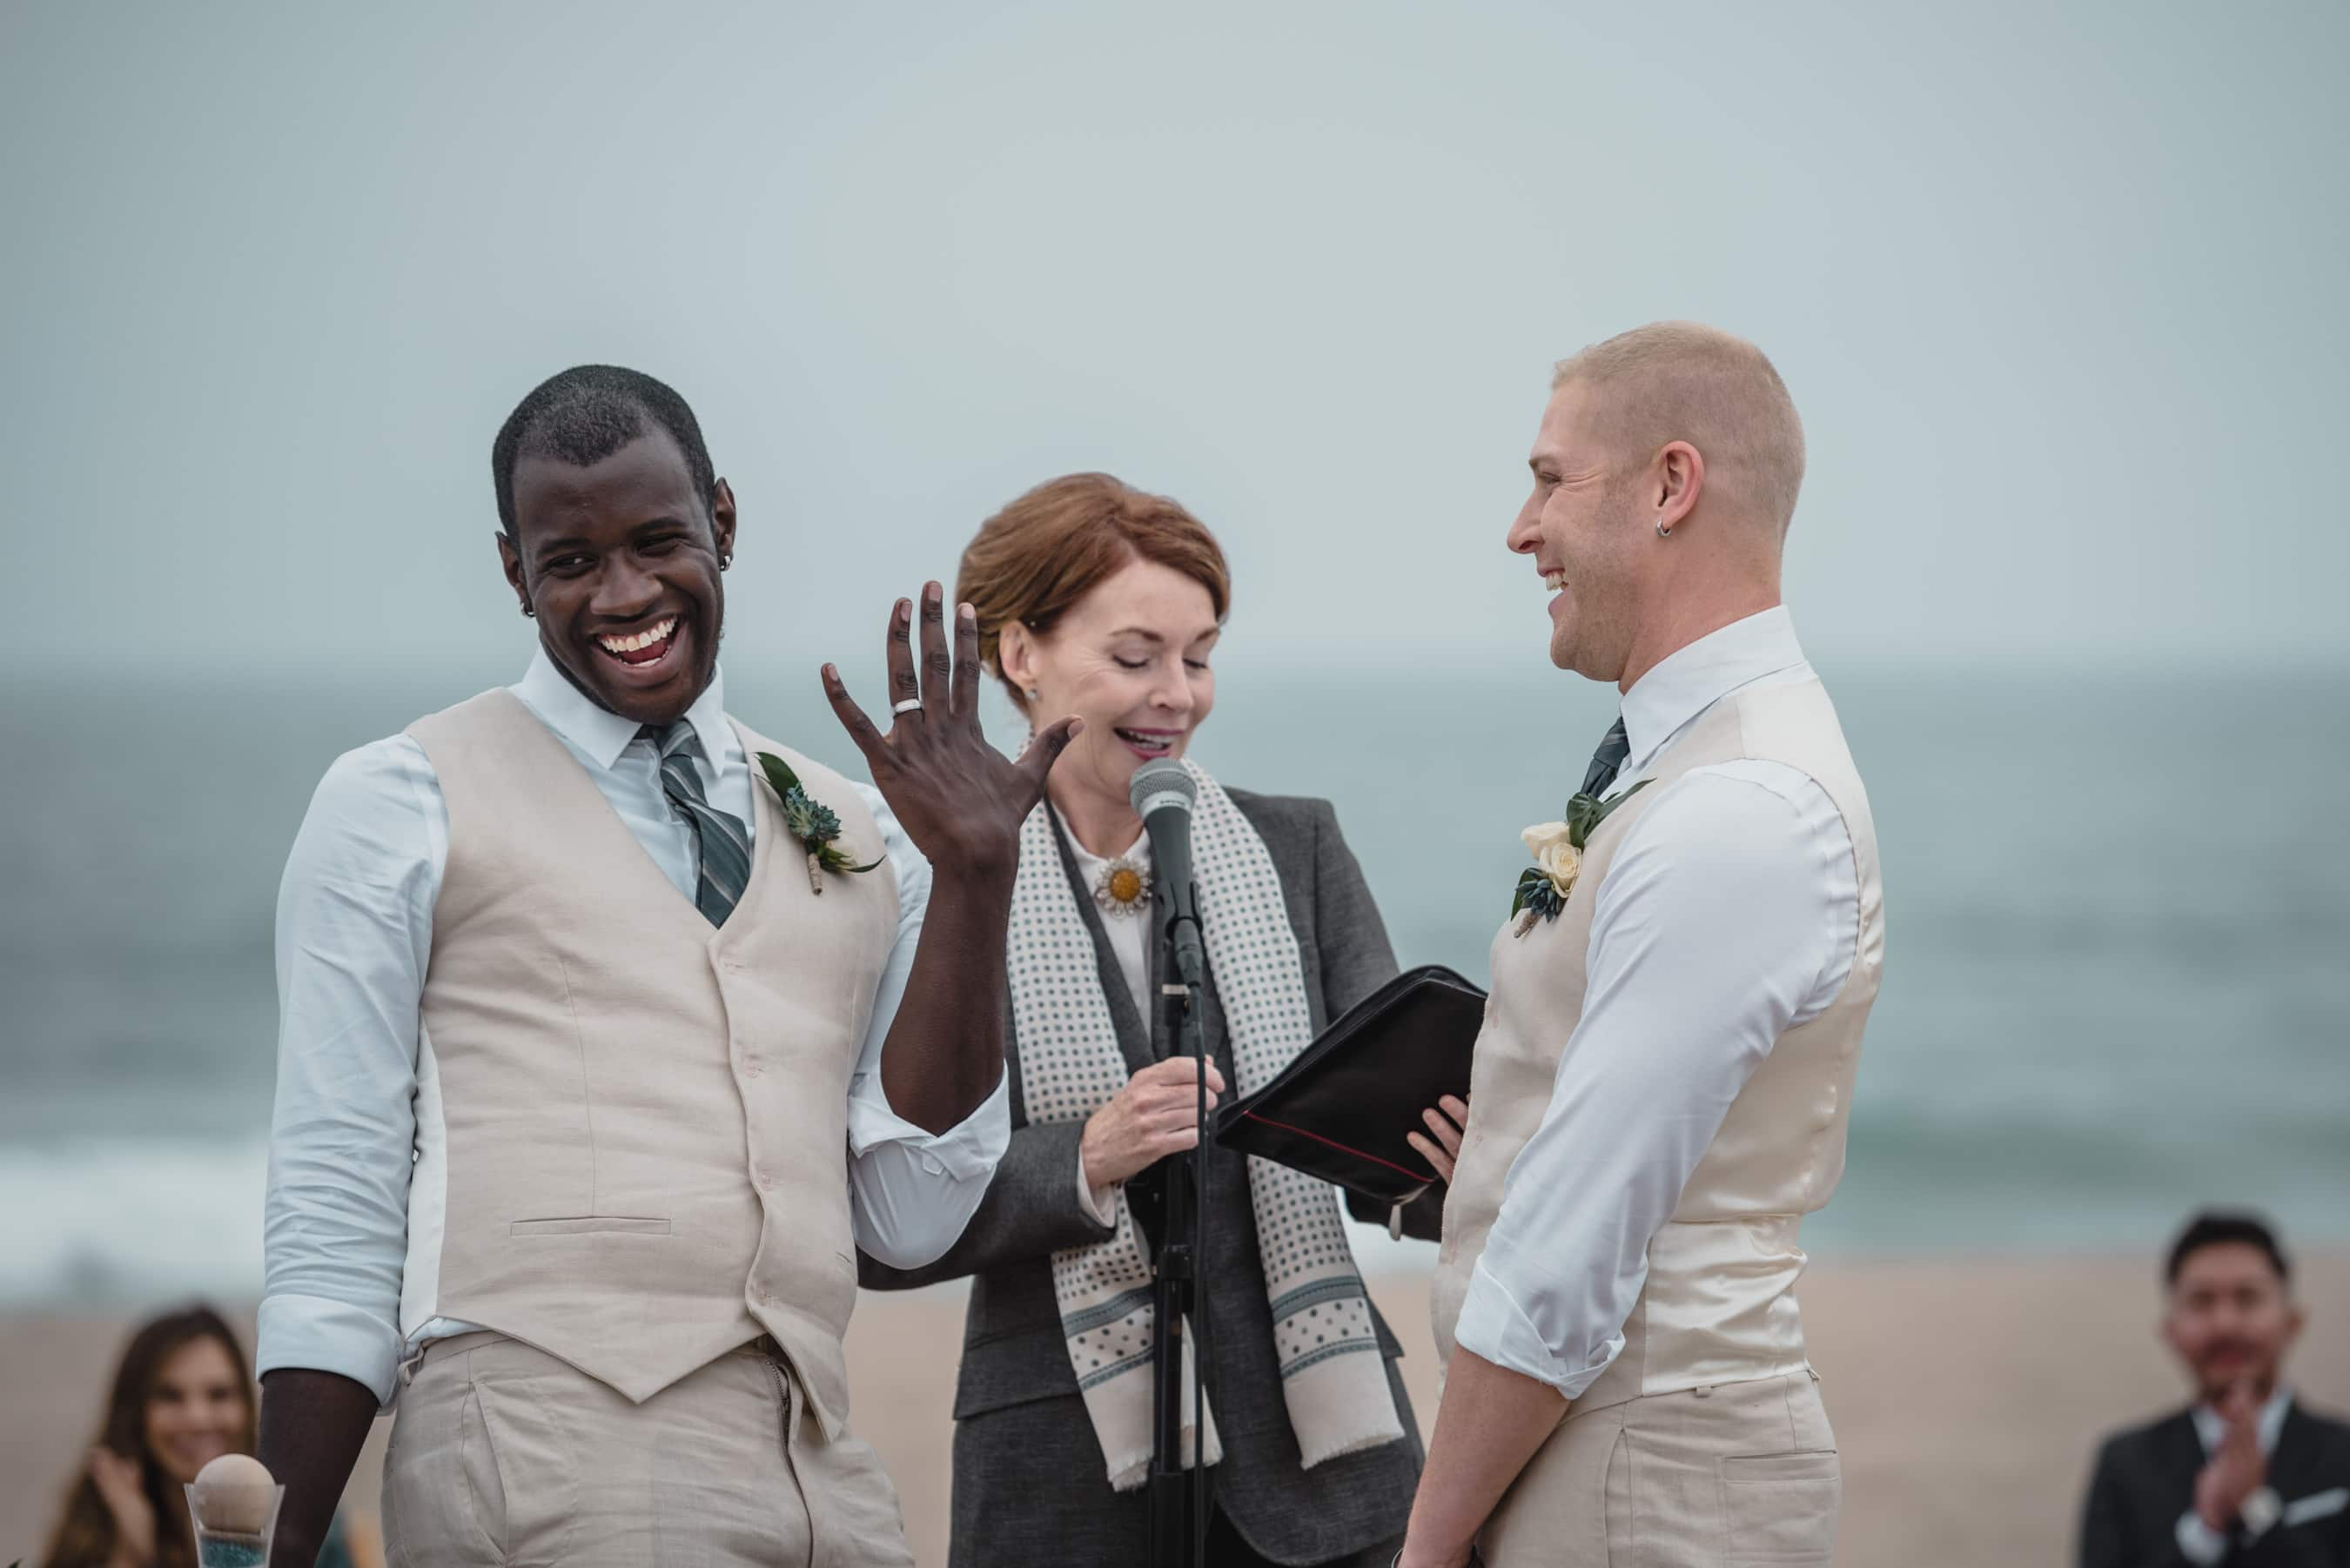 gay wedding ceremony in Manhatan Beach.jpg